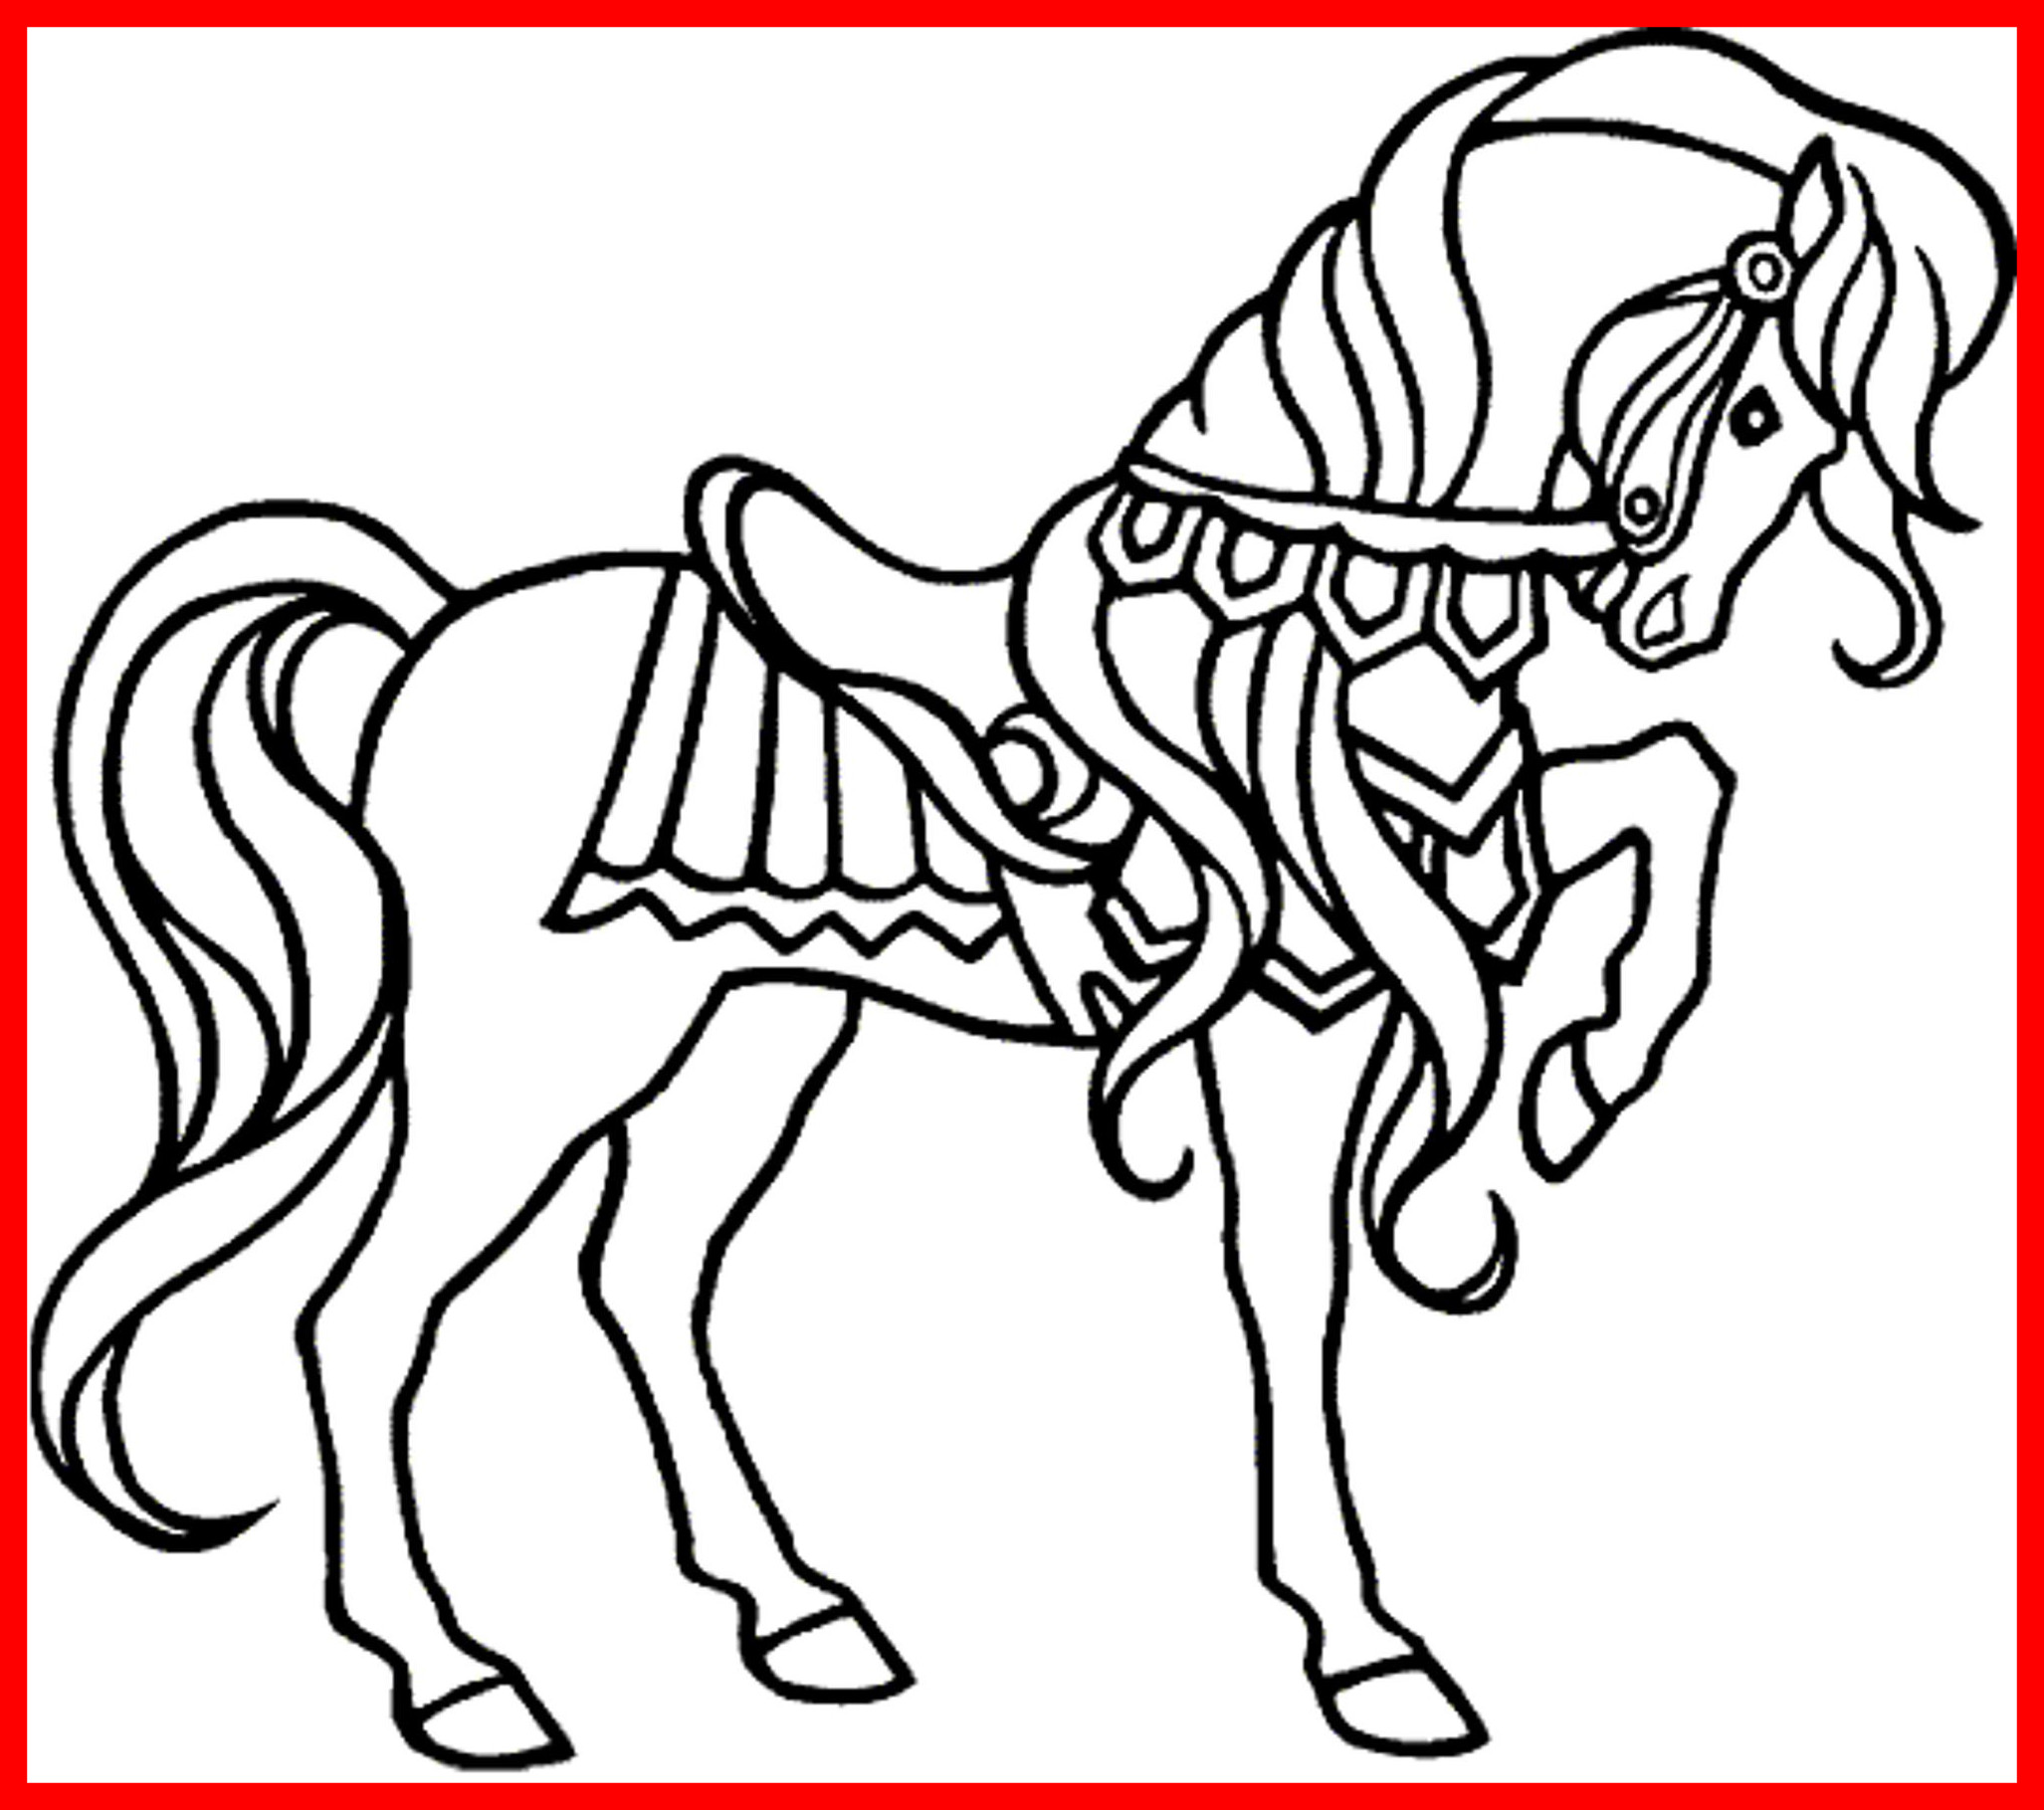 2054x1819 Appealing Horse Drawing Kids At Getdrawings For Personal Use